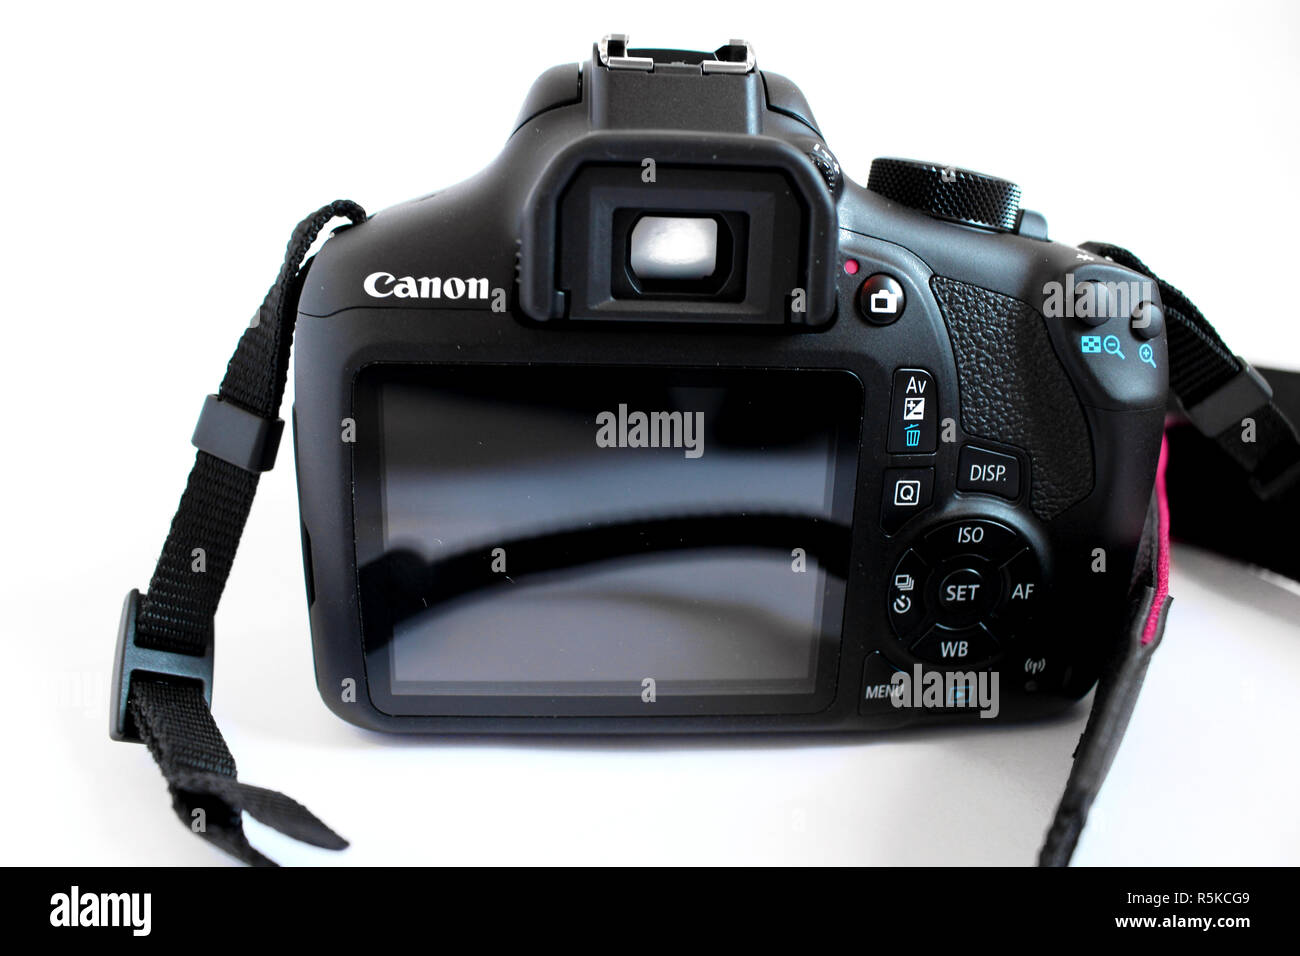 Camera Canon 1300d, lens efs 18-55mm, black, editorial, illustrative - Stock Image